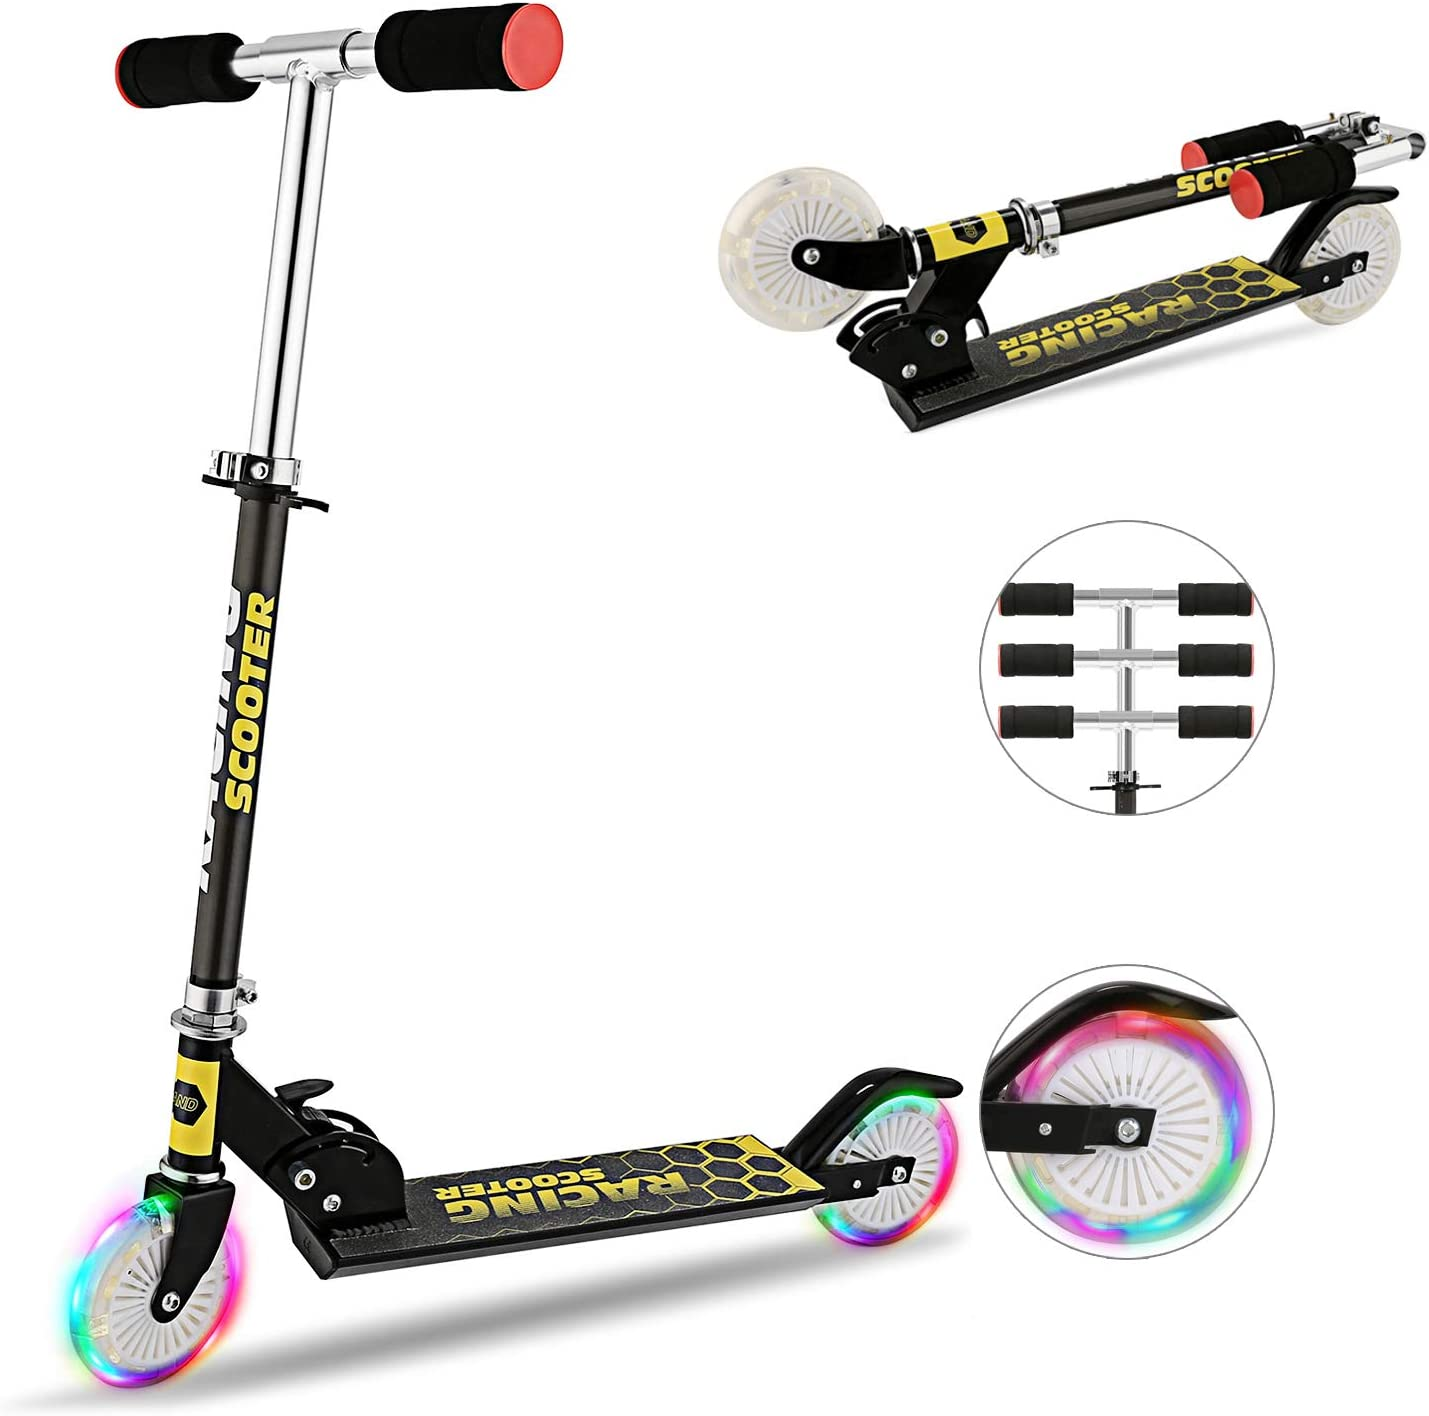 Hikole Scooter for Kids with LED Light Up Wheels, Adjustable Height Kick Scooters for Boys and Girls, Rear Fender Break 5lb Lightweight Folding Kids Scooter, 110lb Weight Capacity